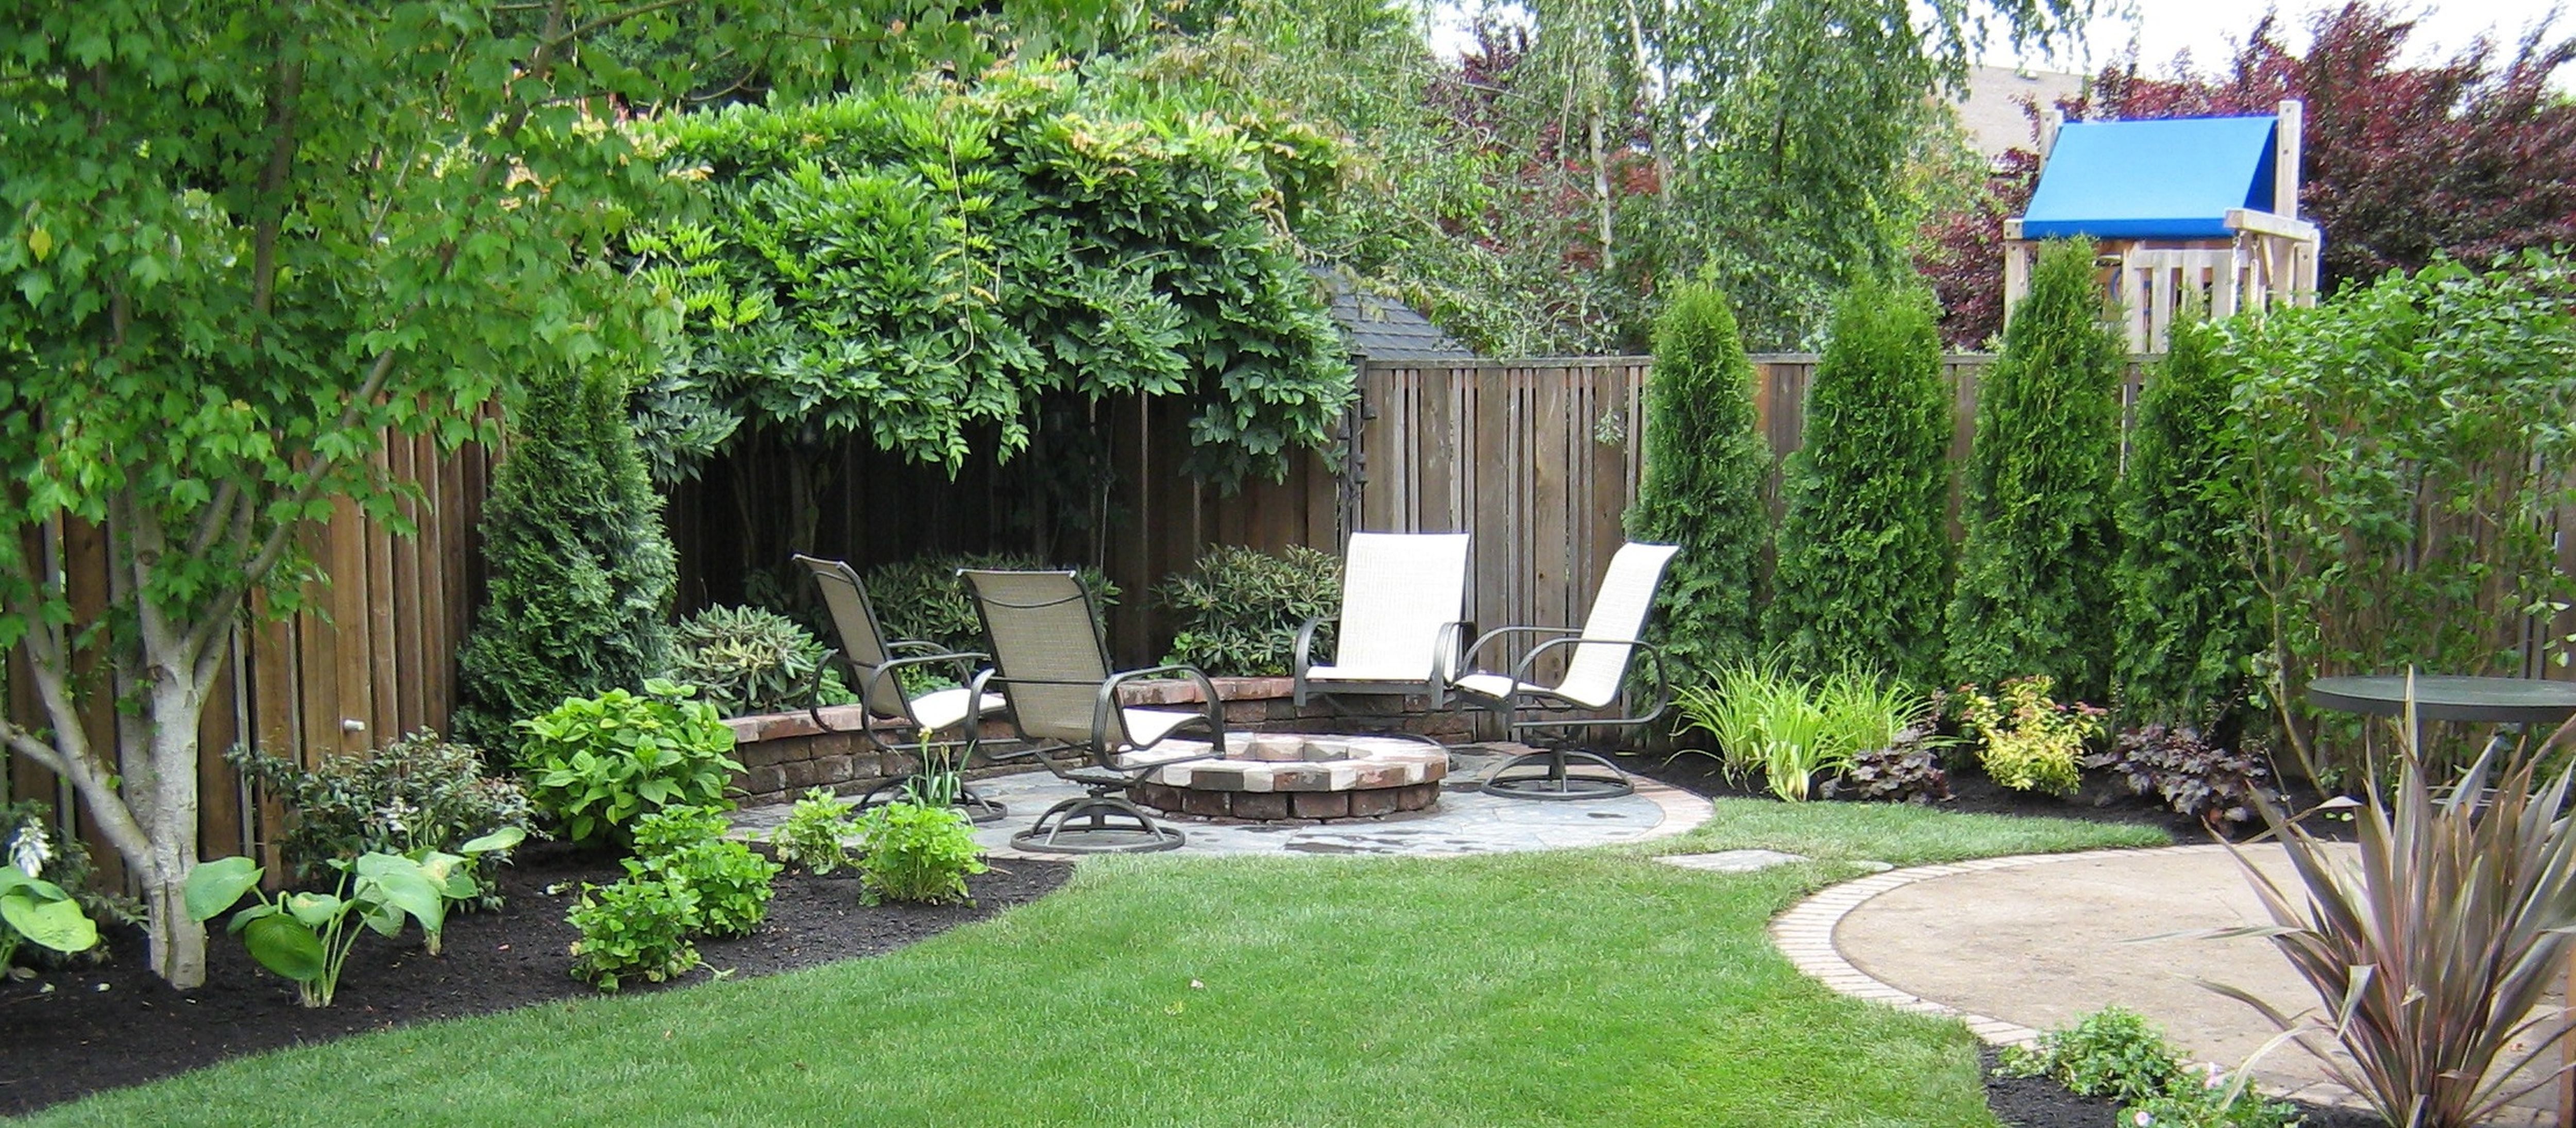 Simple landscaping ideas for a small space simple for Basic small garden design